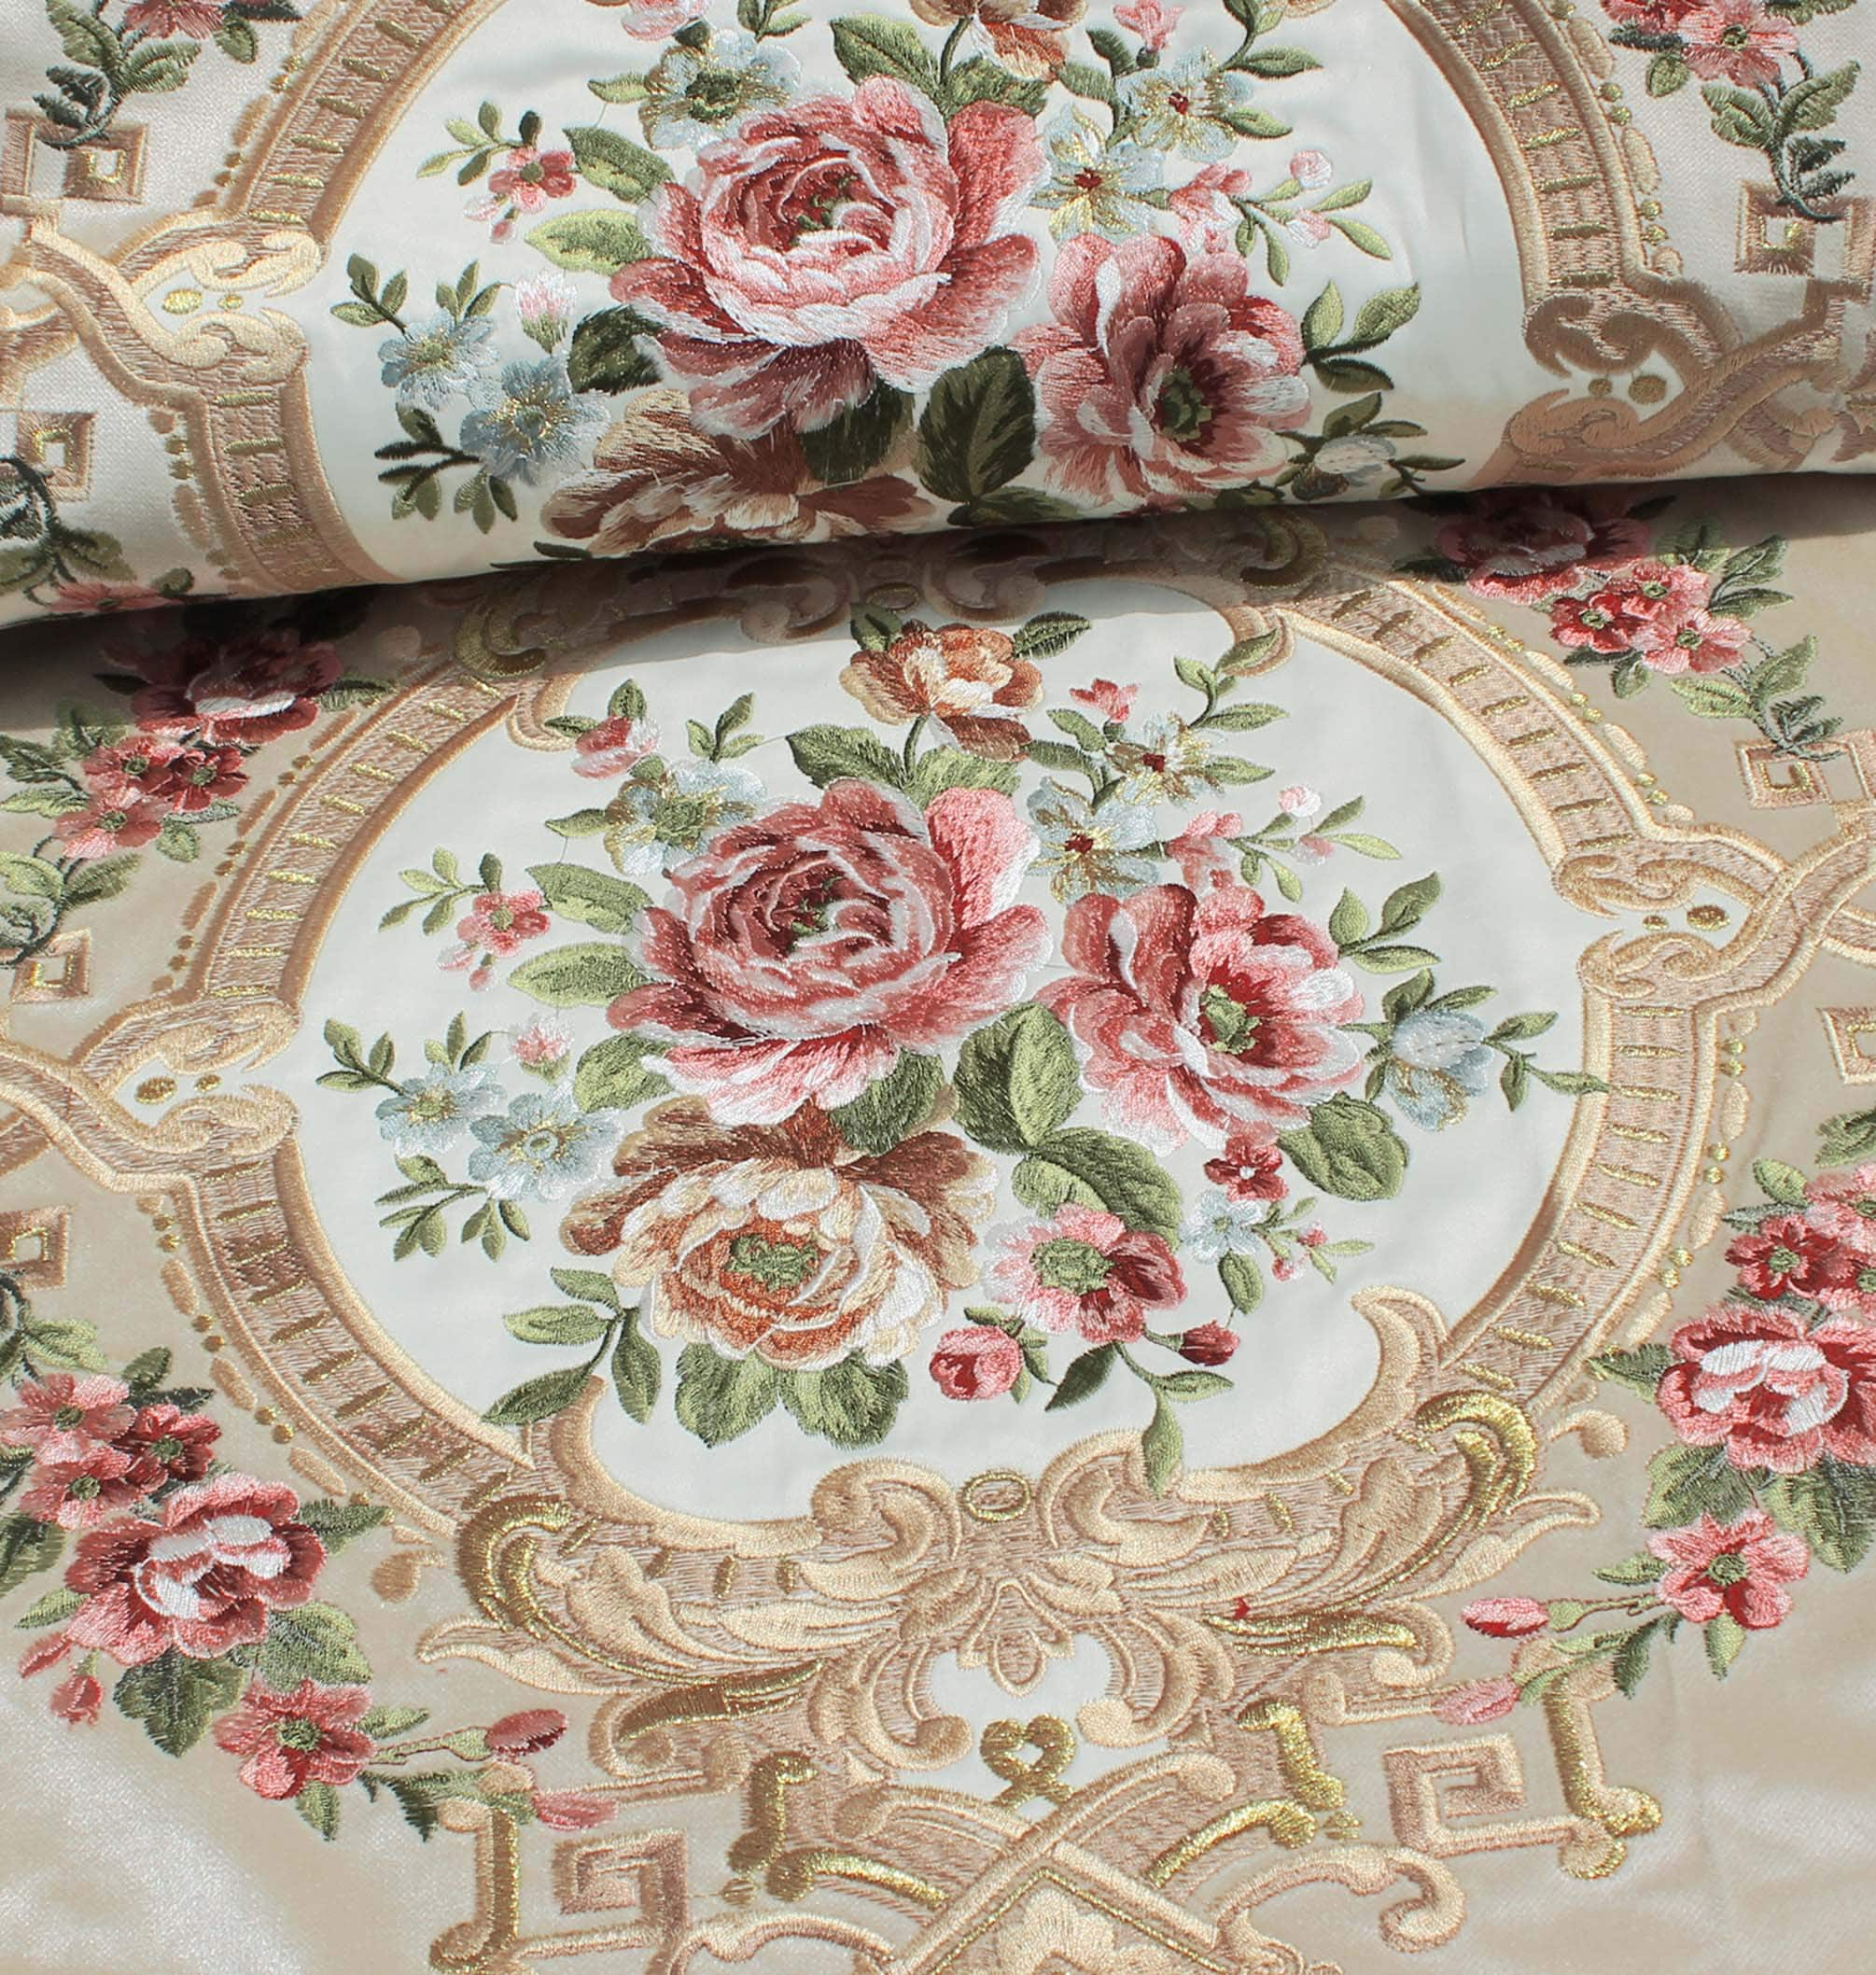 Velvet Embroidery Home Decor Fabric, Aubusson Rose Bouquet with Baroque Style Border for Curtain, Sofa, Chair, Cushion-Beige, 145cm width